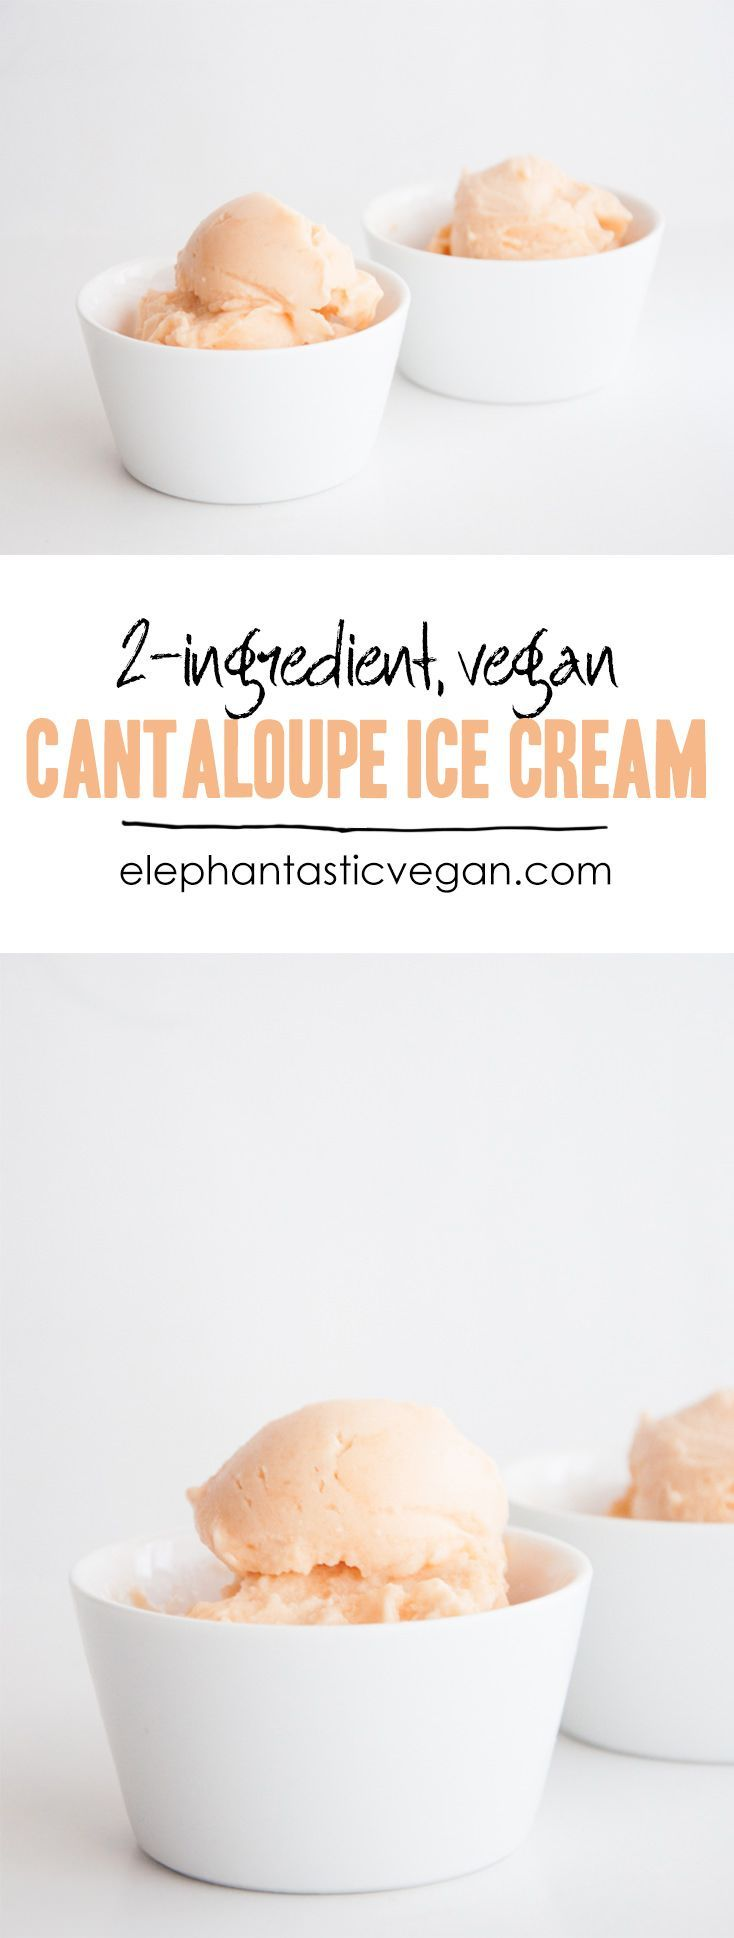 Vegan 2-Ingredient Cantaloupe Ice Cream http://ElephantasticVegan.com